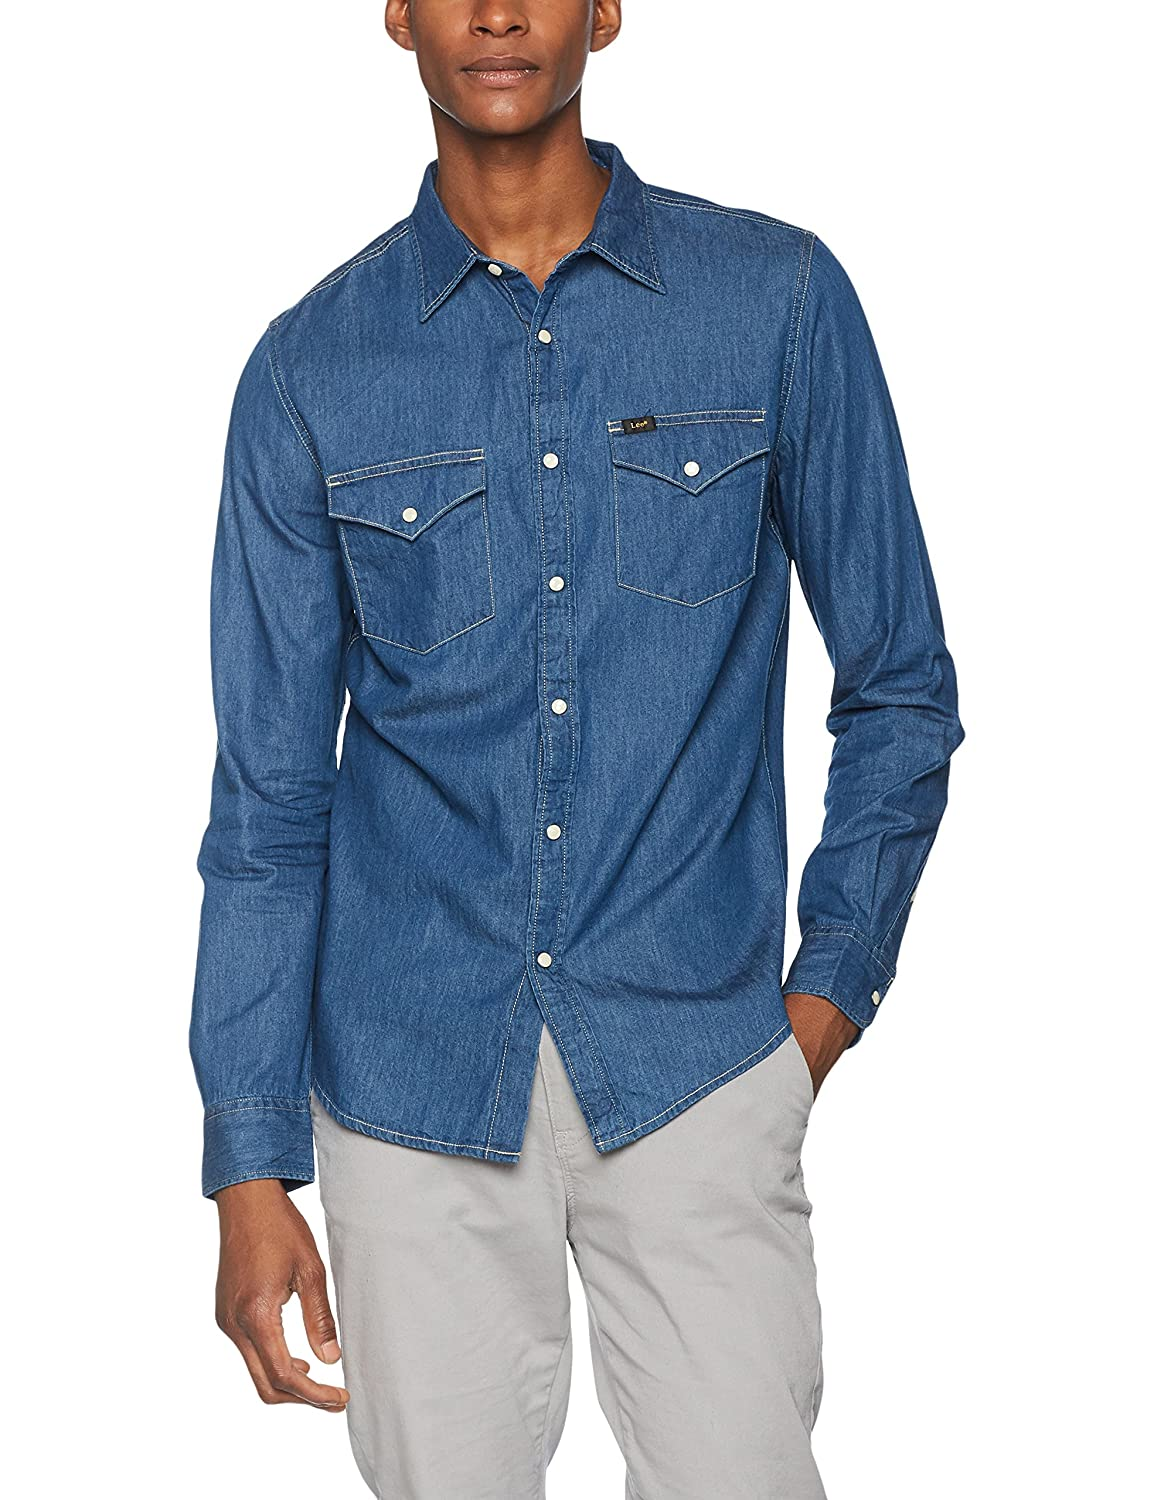 TALLA 42 centimeters (Talla del fabricante: Large). Lee Western Shirt Camisa para Hombre